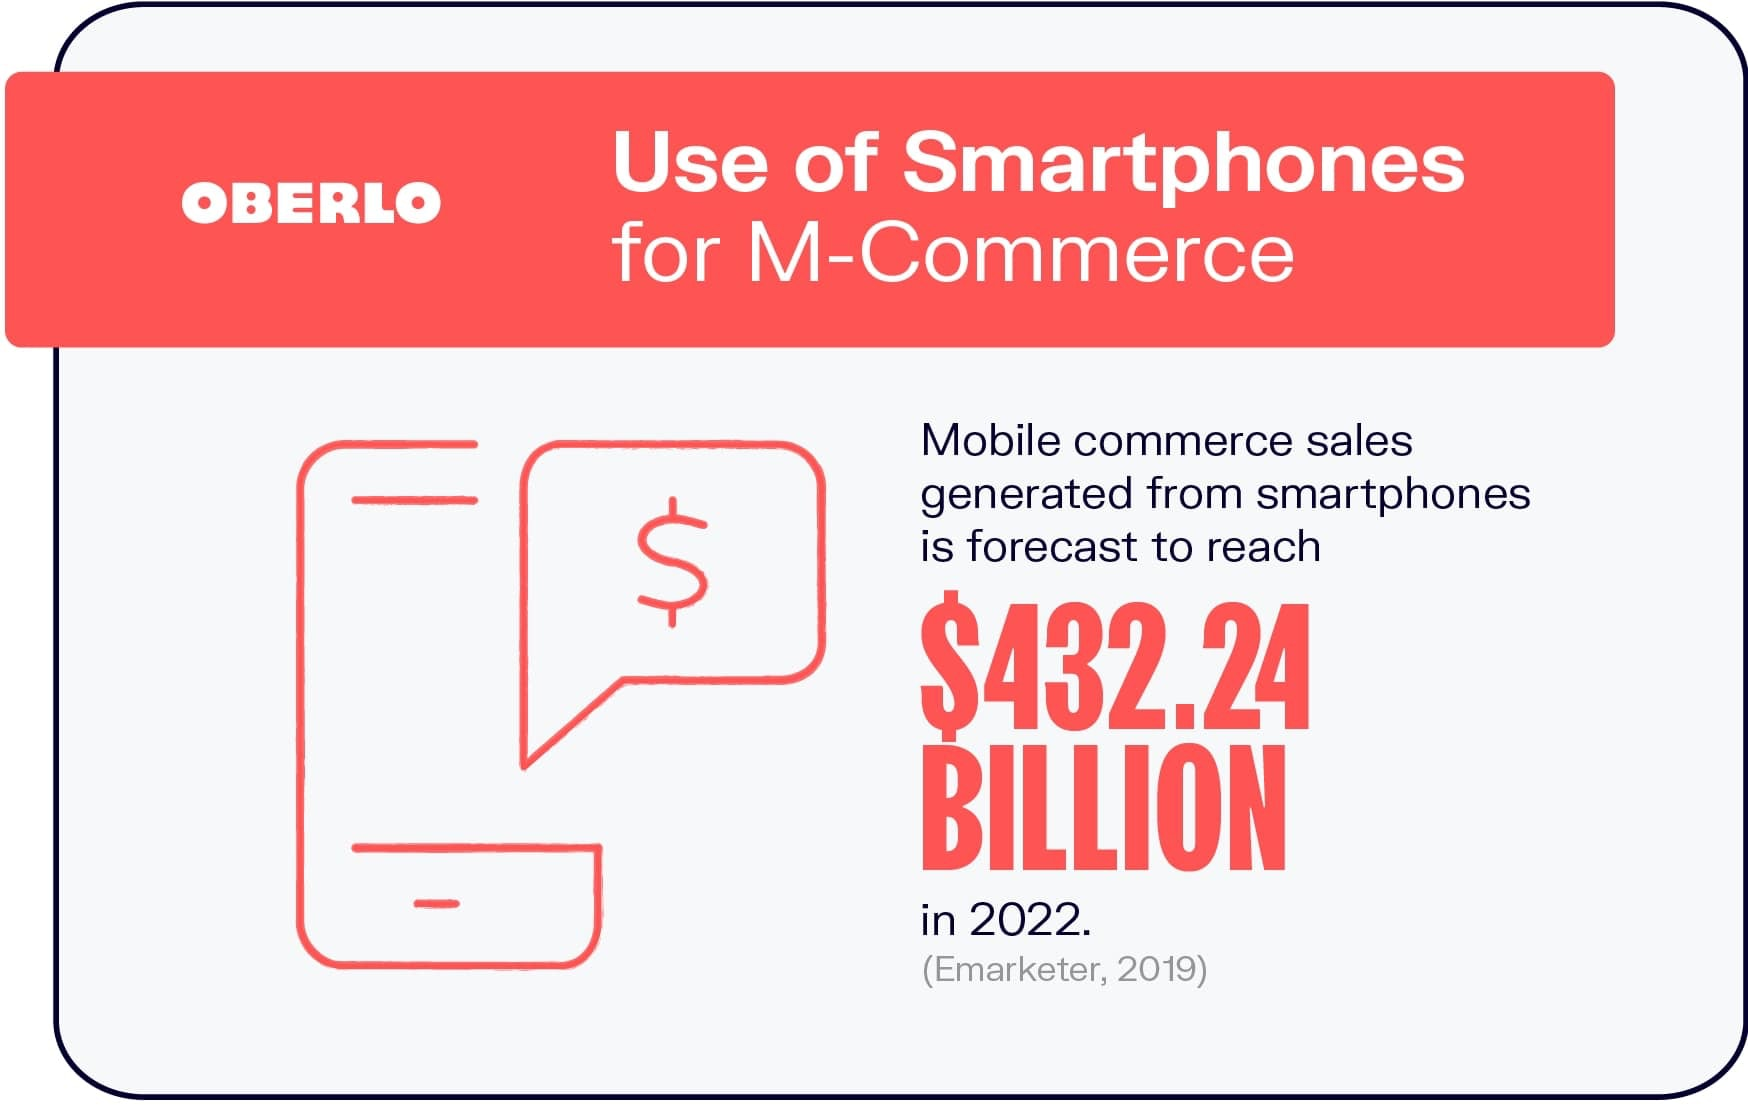 Use of Smartphones for M-Commerce